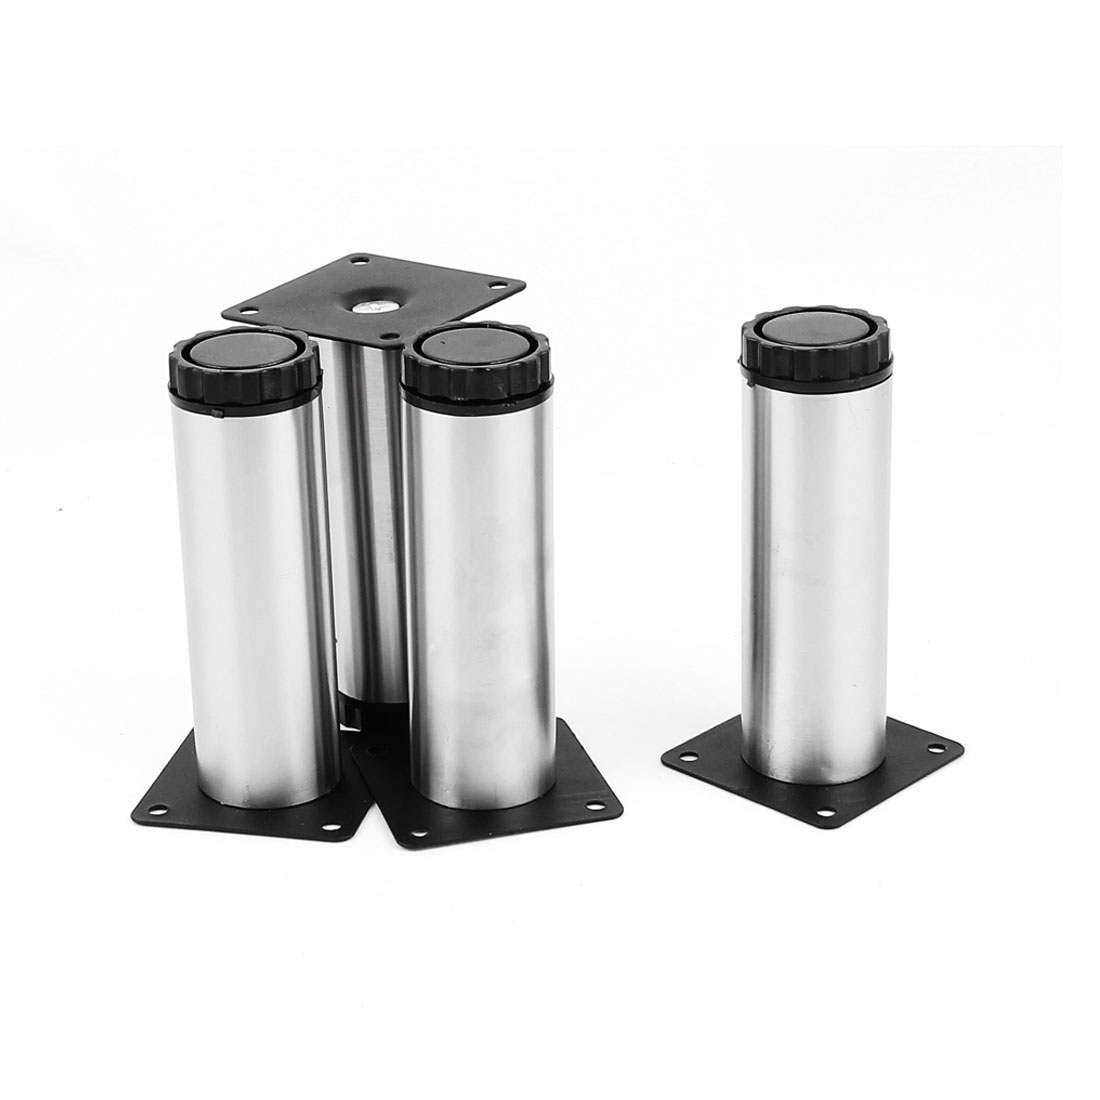 38mm x 120mm Stainless Steel Stand Round Metal Feet Adjustable Kitchen Cabinet Legs 4pcs